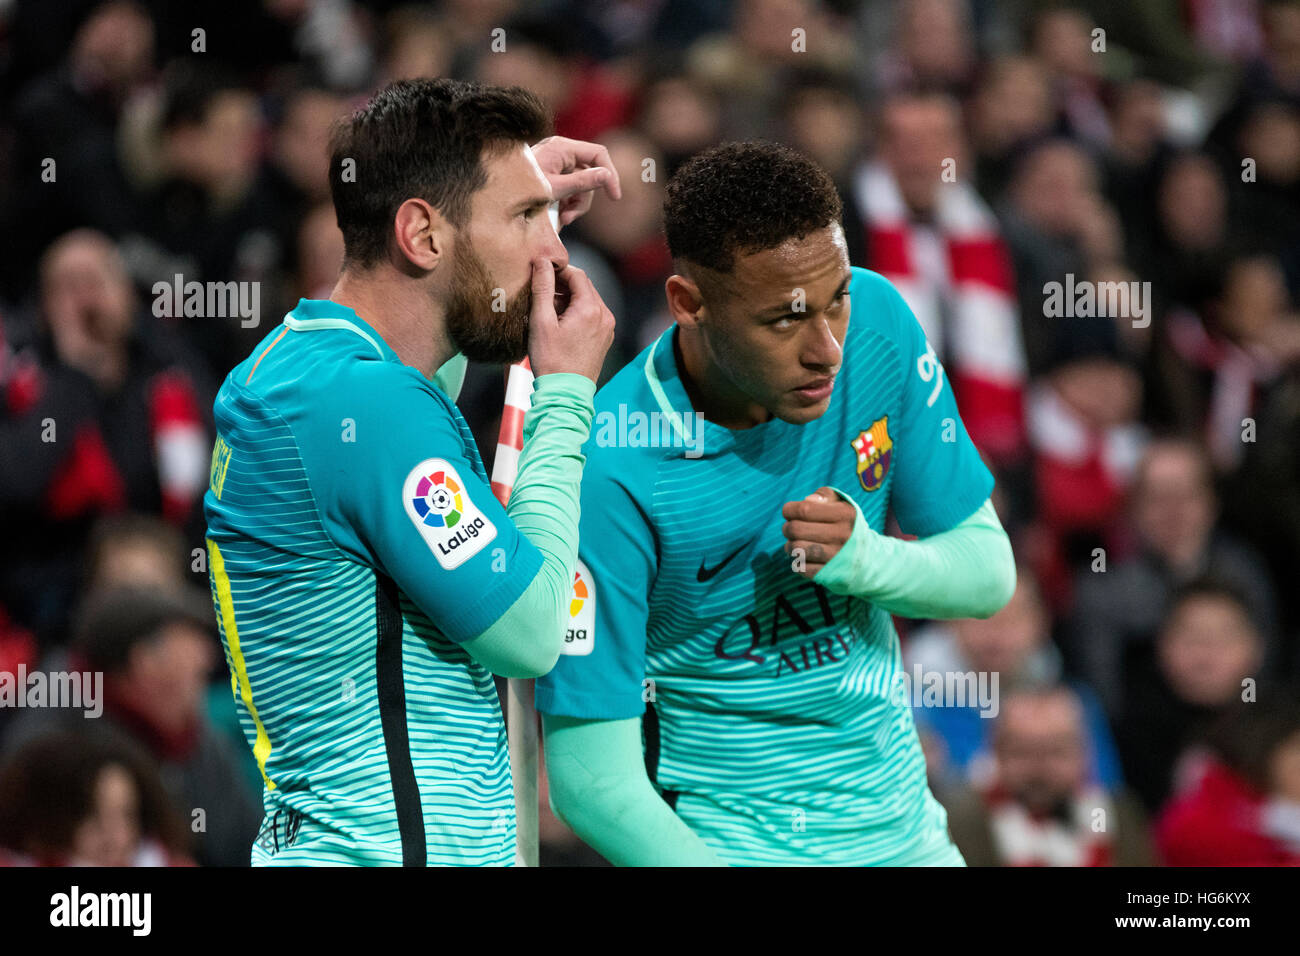 Messi neymar stock photos messi neymar stock images alamy bilbao spain 5th january 2017 leo messi forward fc barcelona voltagebd Image collections